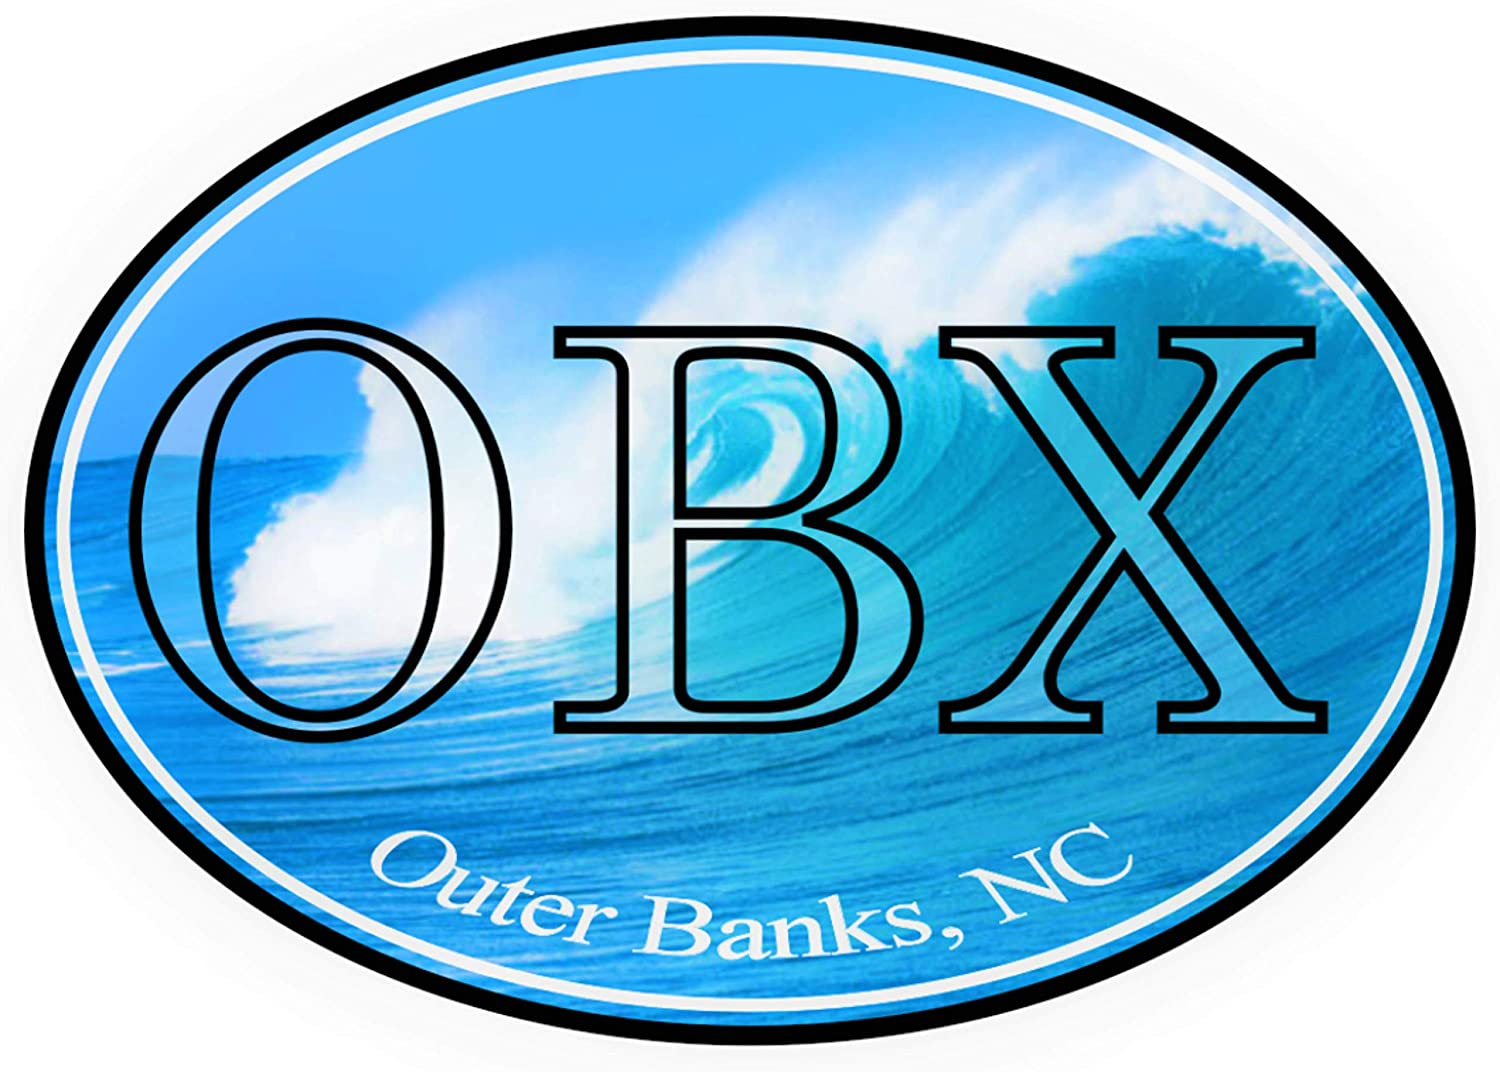 OBX Outer Banks Wave Bumper Sticker | North Carolina NC Premium Vinyl (4 X 3 inch) Oval Car Decal - For Auto Laptop Hydro-Flask Water Bottle Stick Anywhere Barrier Islands Roanoke Island Sunrise Ocean